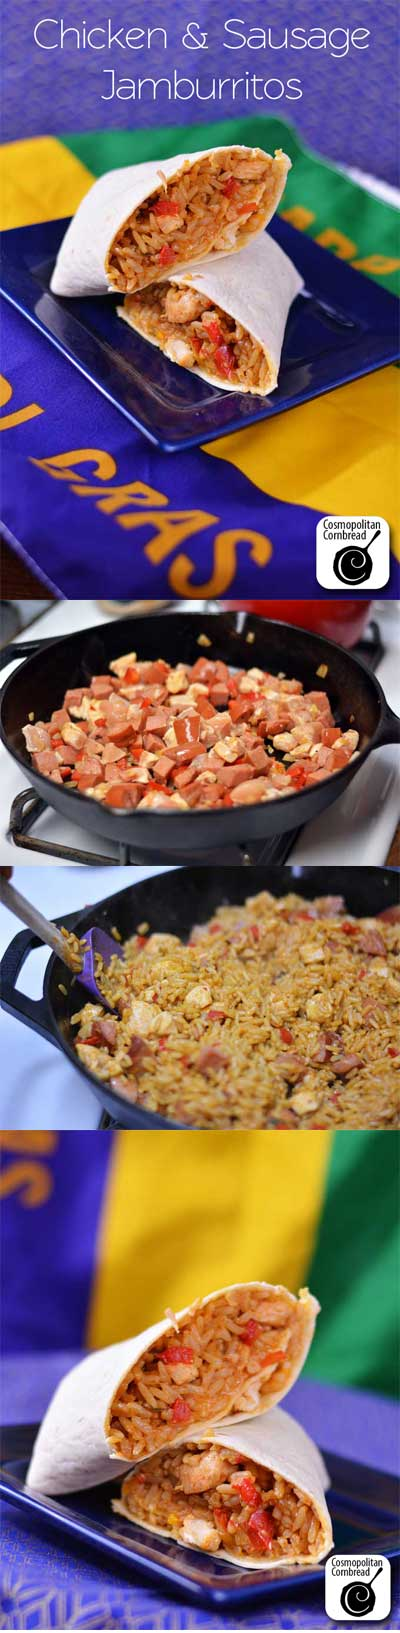 "Chicken and Sausage ""Jamburittos"" have all the flavor of jambalaya in an easy-to-eat-on-the-go package. Get the recipe from Cosmopolitan Cornbread"